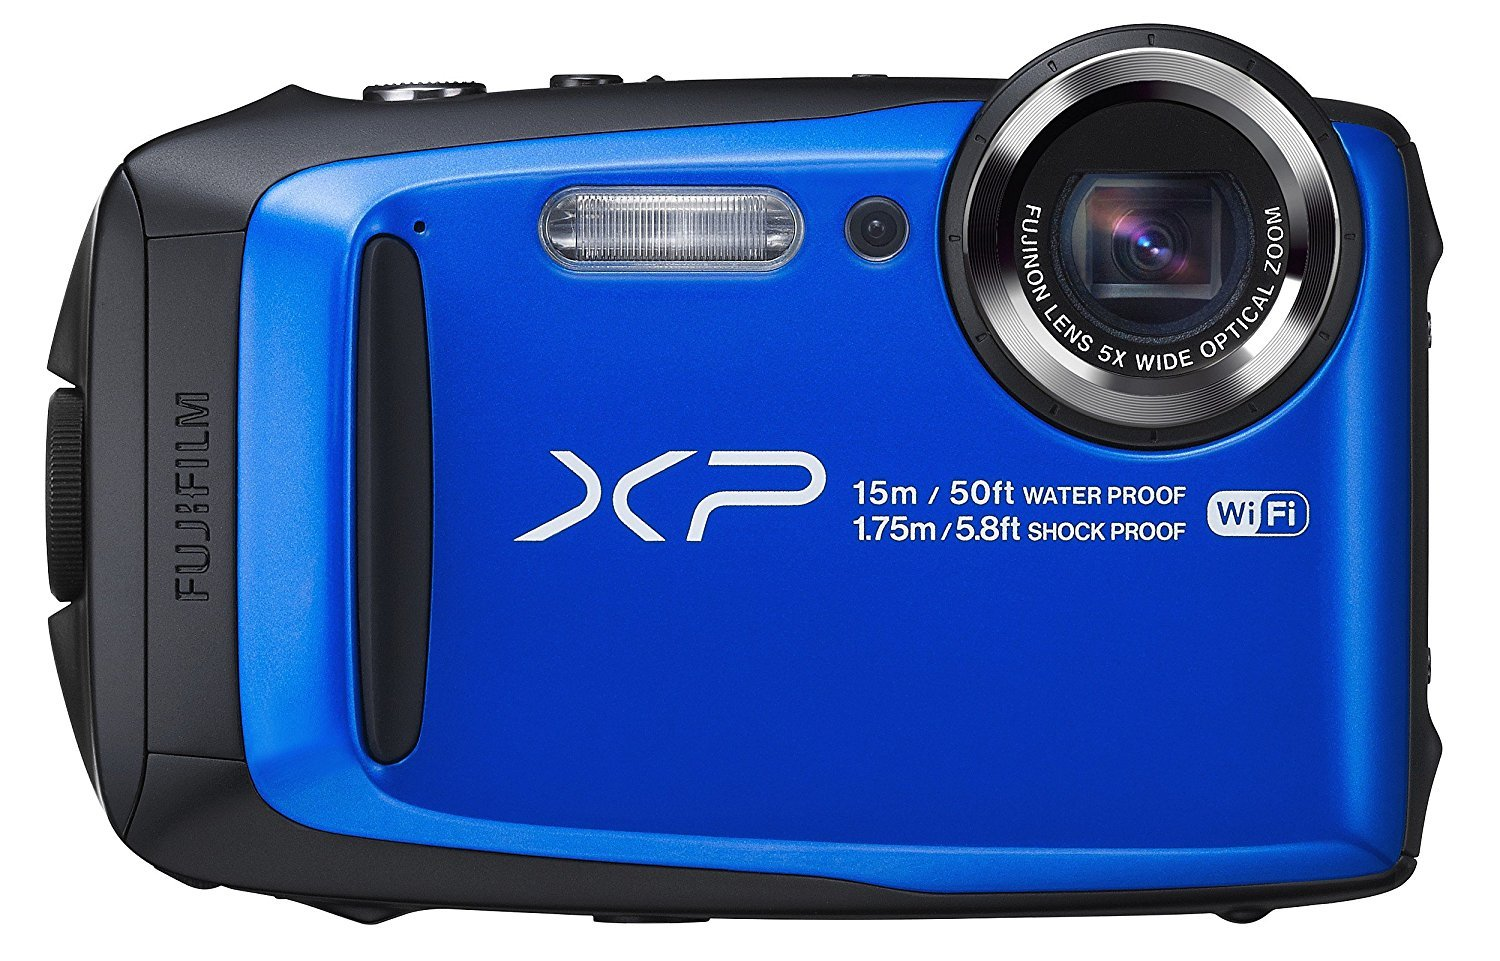 Fujifilm FinePix XP90 Digital Camera (Certified Refurbished) (Blue) by Fujifilm